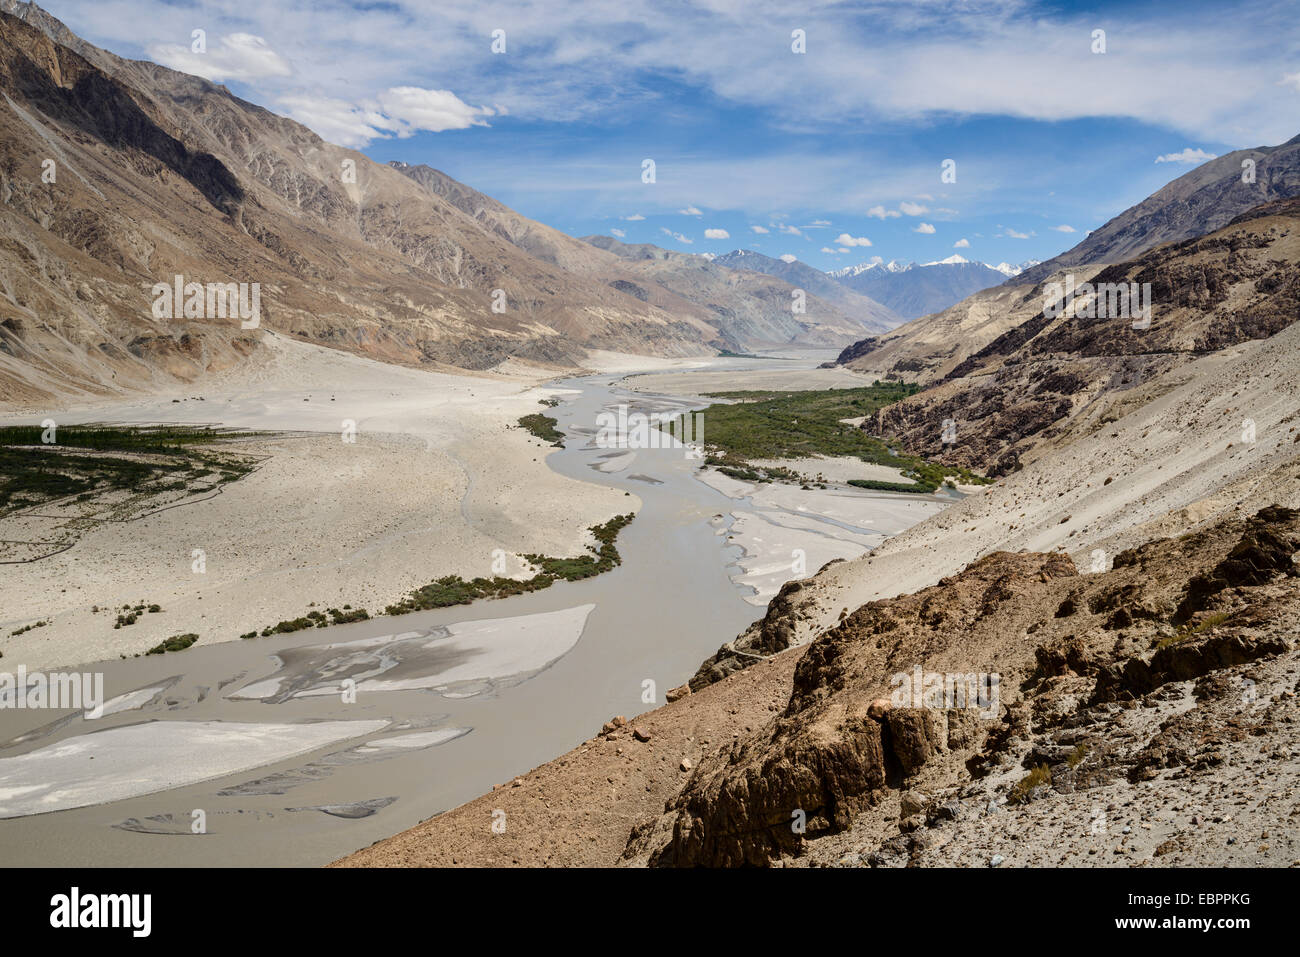 Looking down onto the fertile Nubra Valley, Khalsar, Ladakh, India, Asia - Stock Image